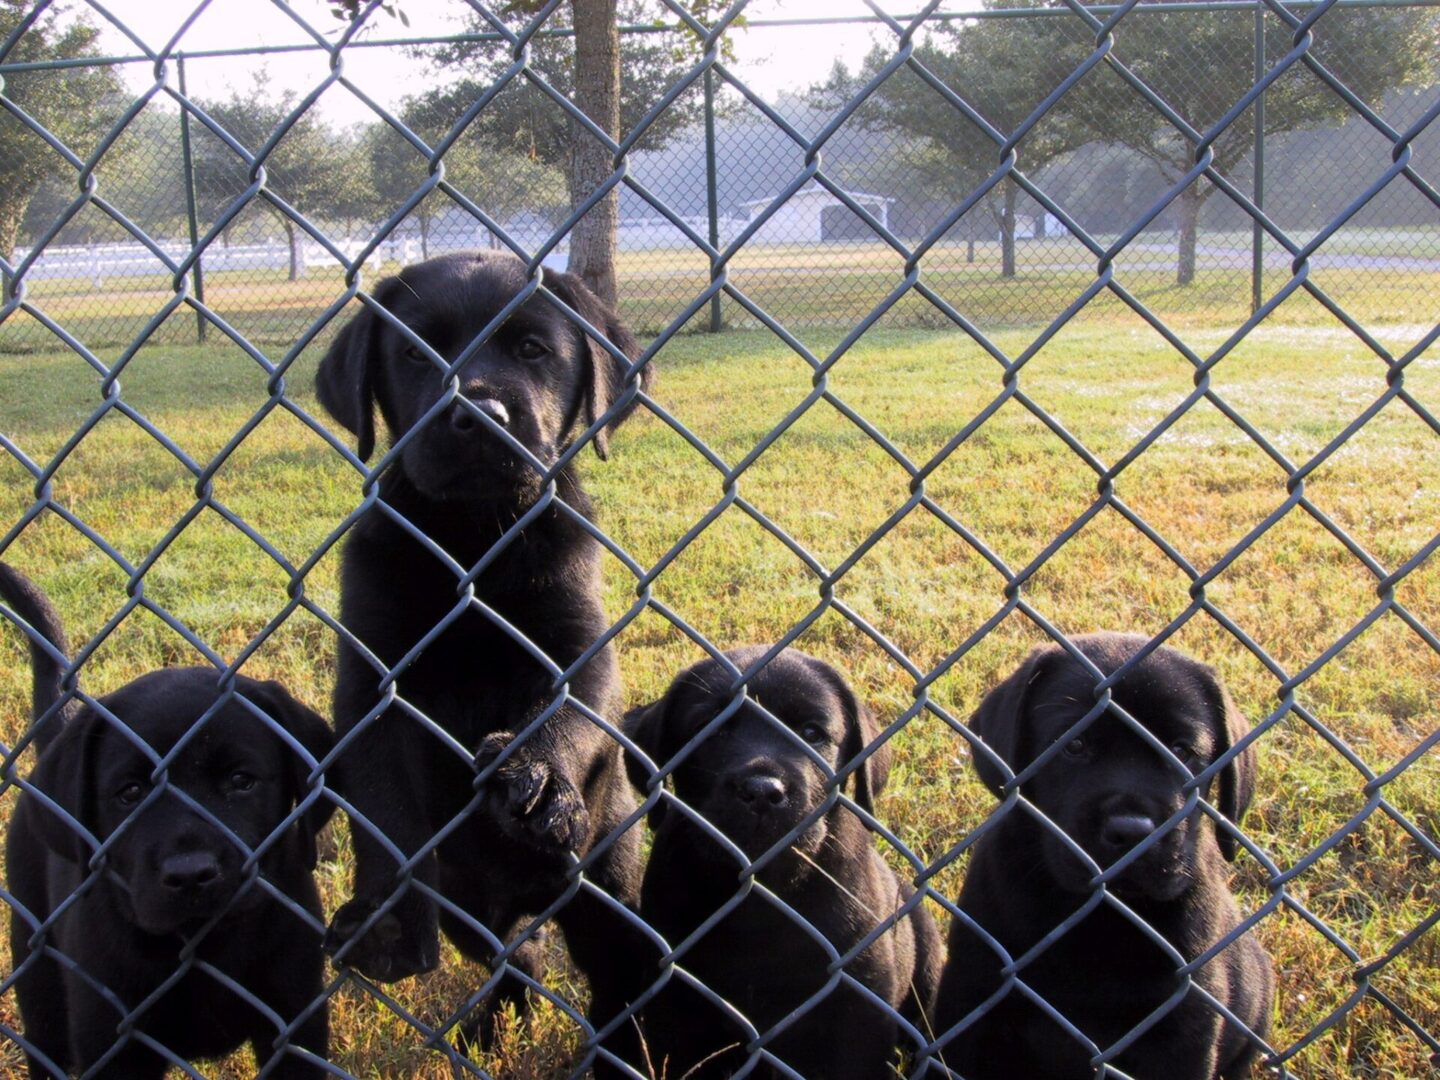 Four black puppies behind a fence